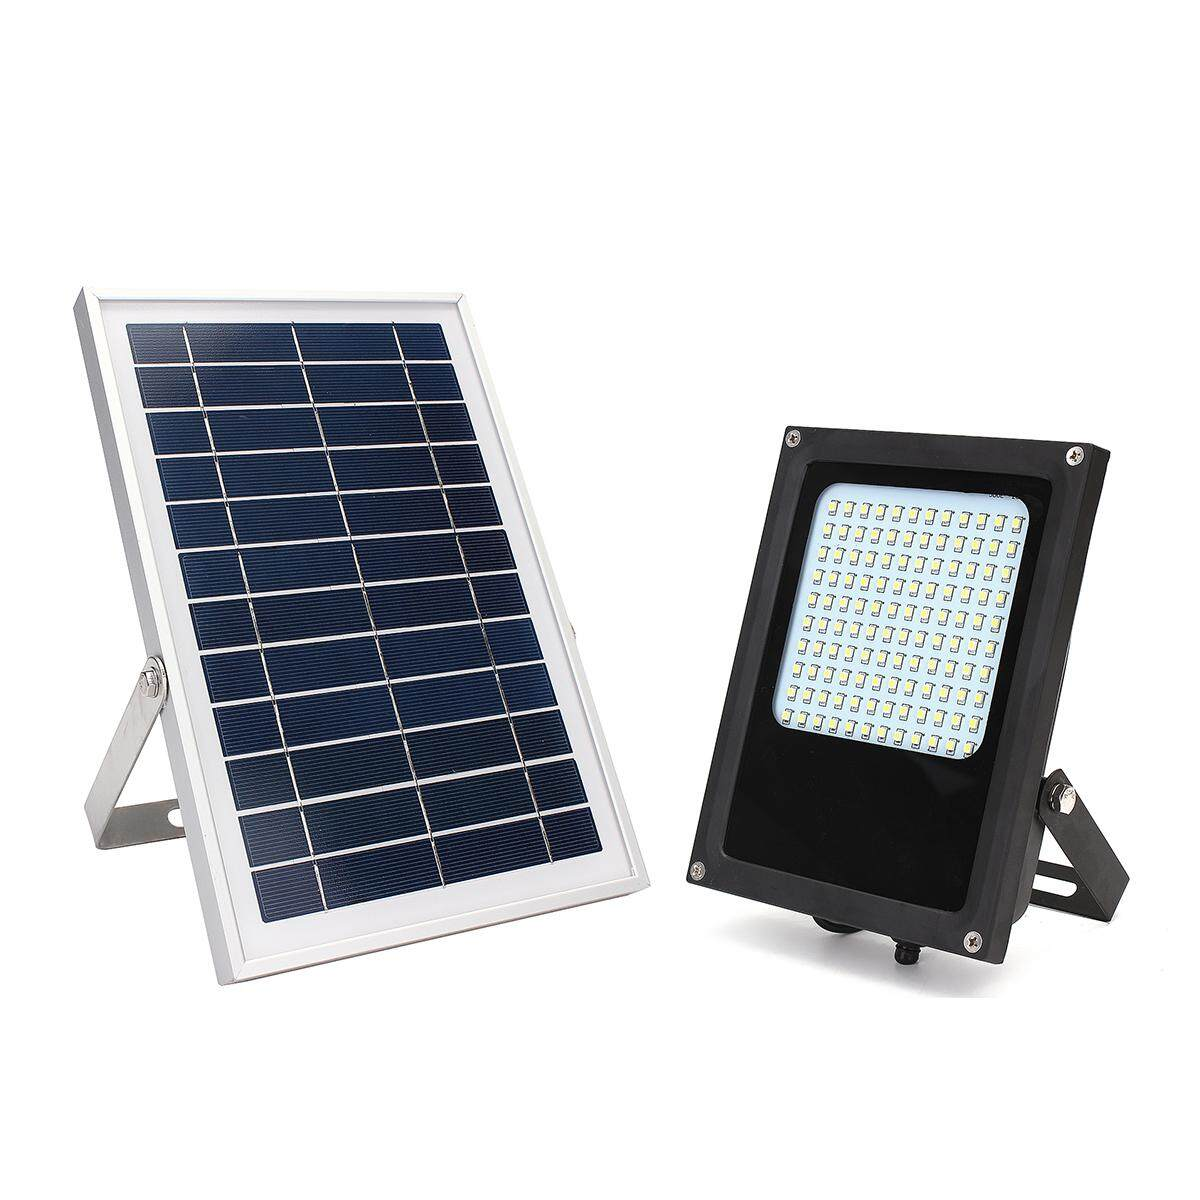 15W 120 LED Solar Powered Panel Floodlight Night Sensor Outdoor Garden Spot Lamp